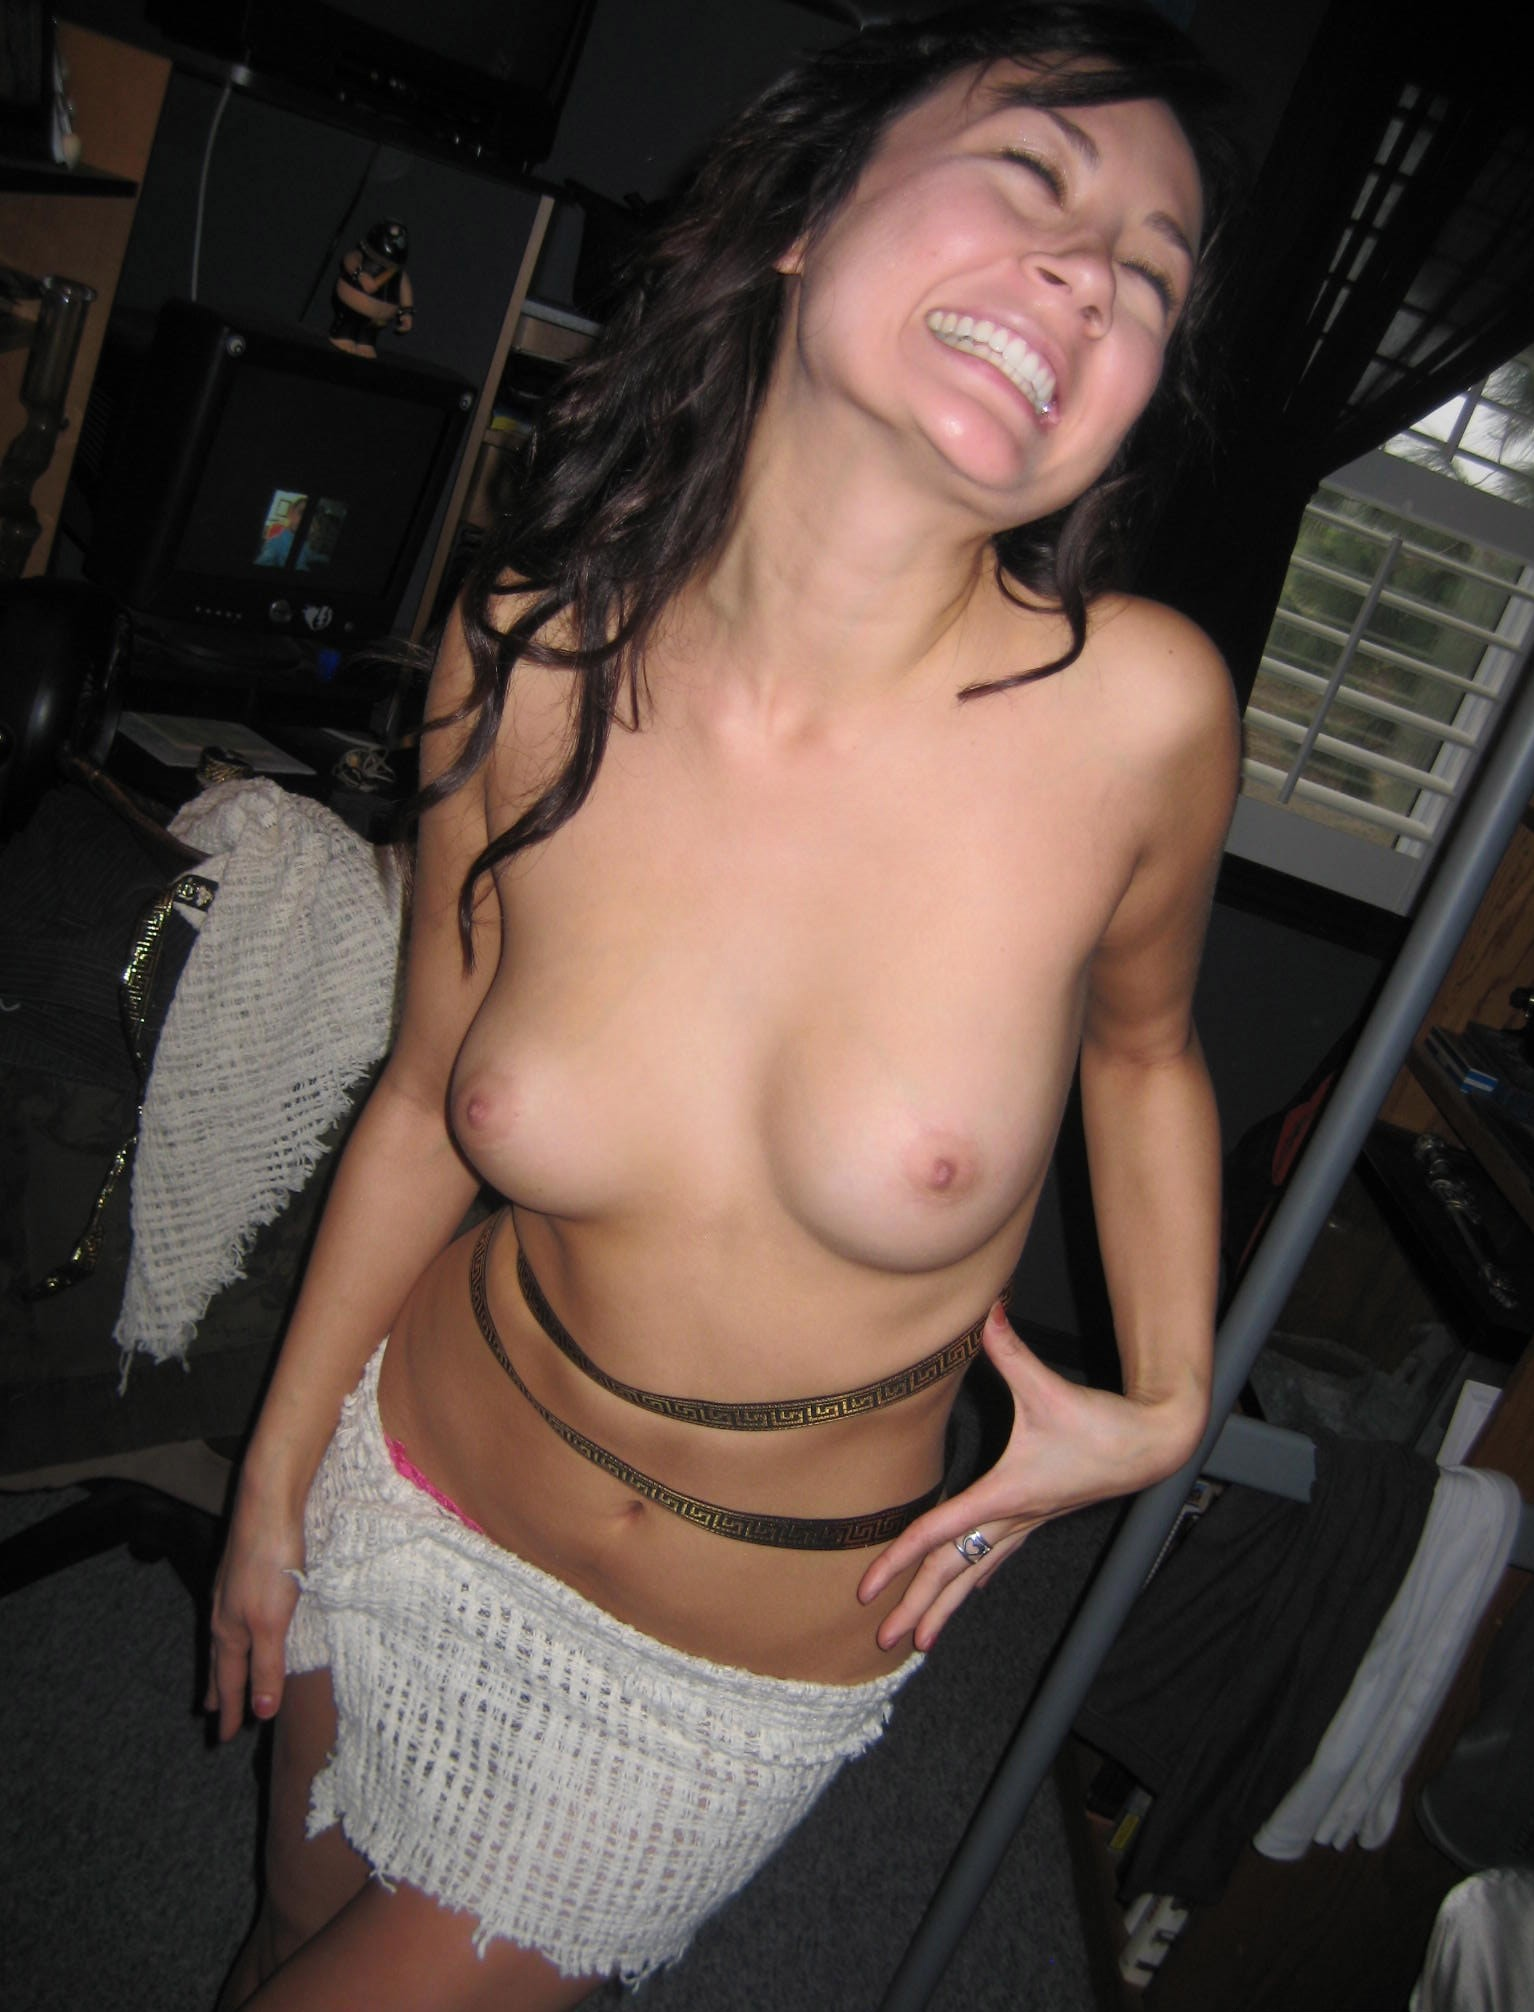 Black haired beautiful woman naked